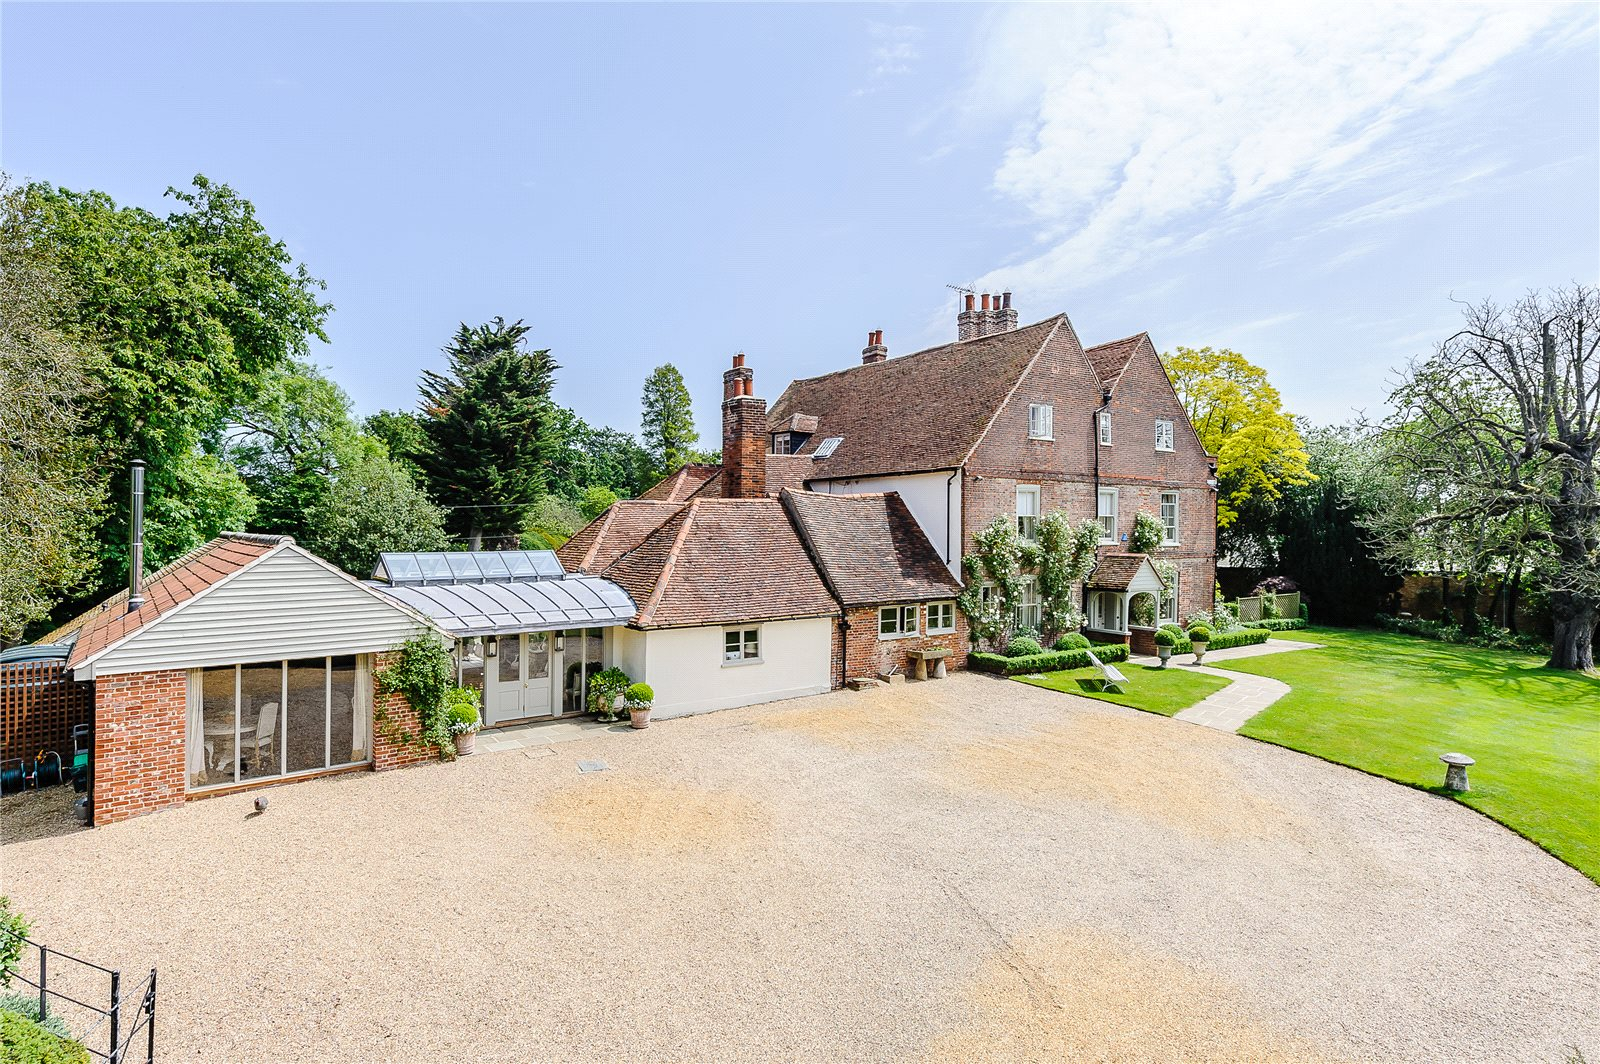 Single Family Home for Sale at Langford Road, Wickham Bishops, Witham, Essex, CM8 Witham, England